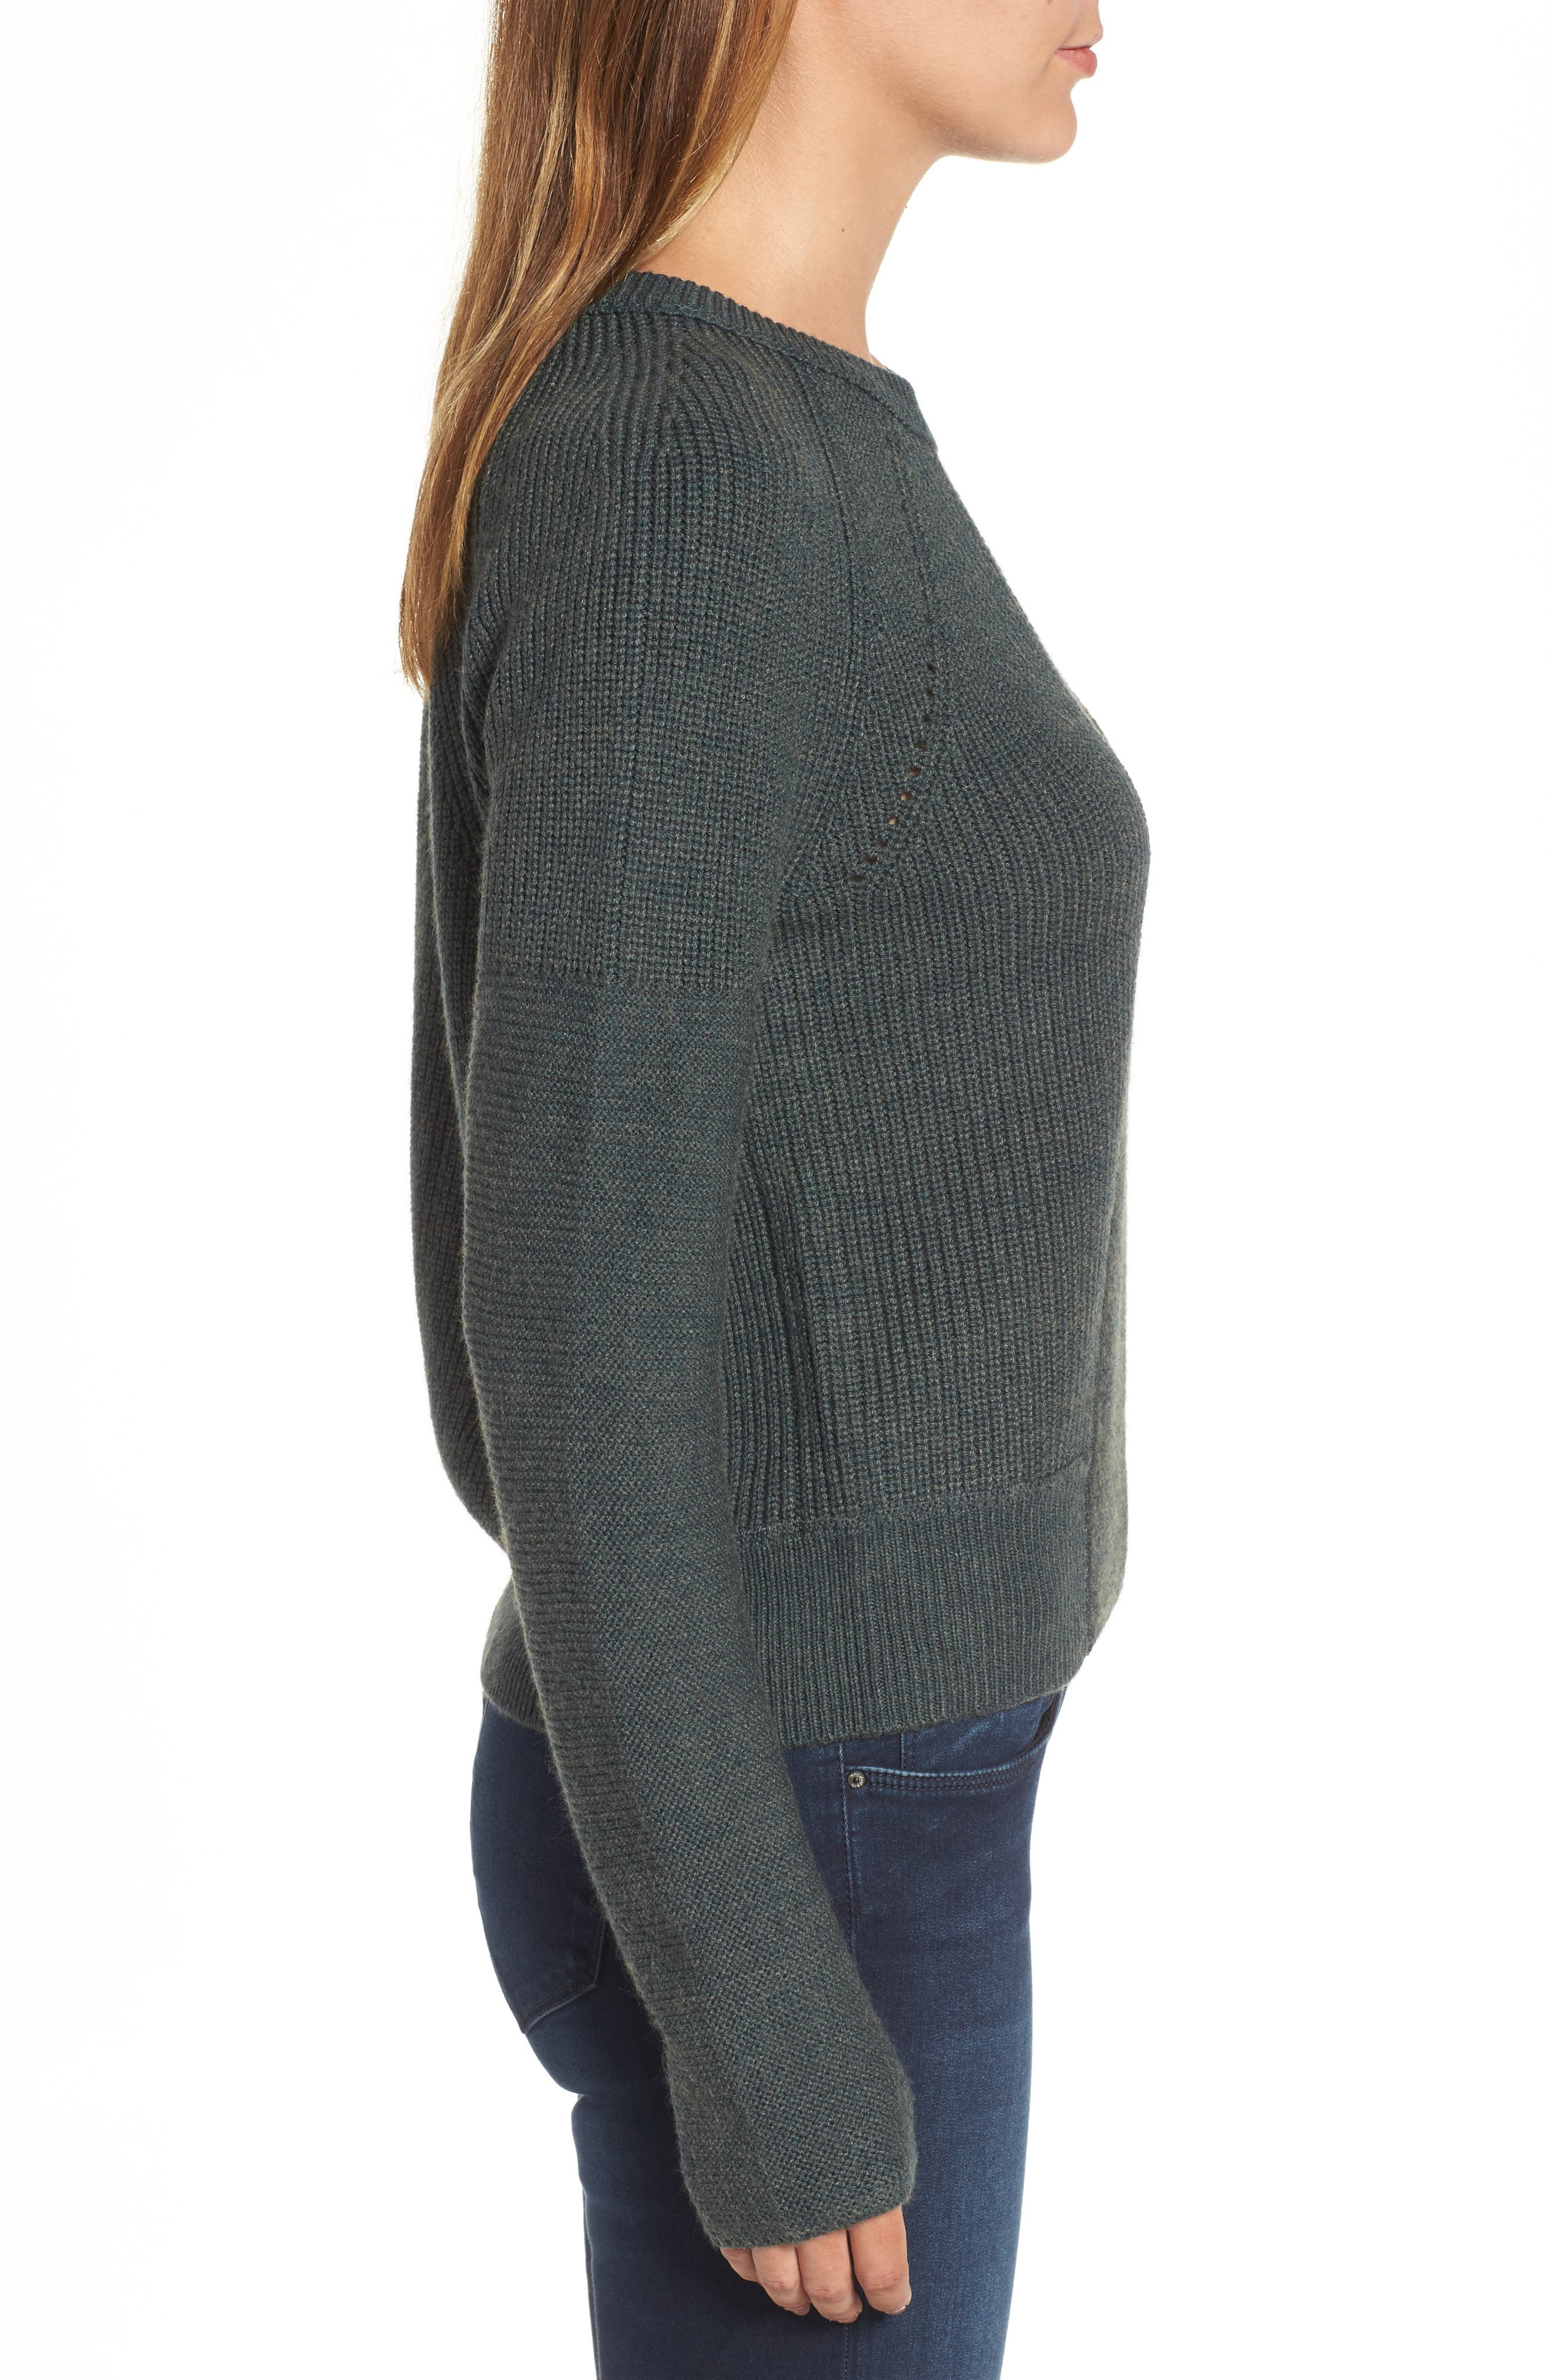 Engineered Stitch Sweater,                             Alternate thumbnail 6, color,